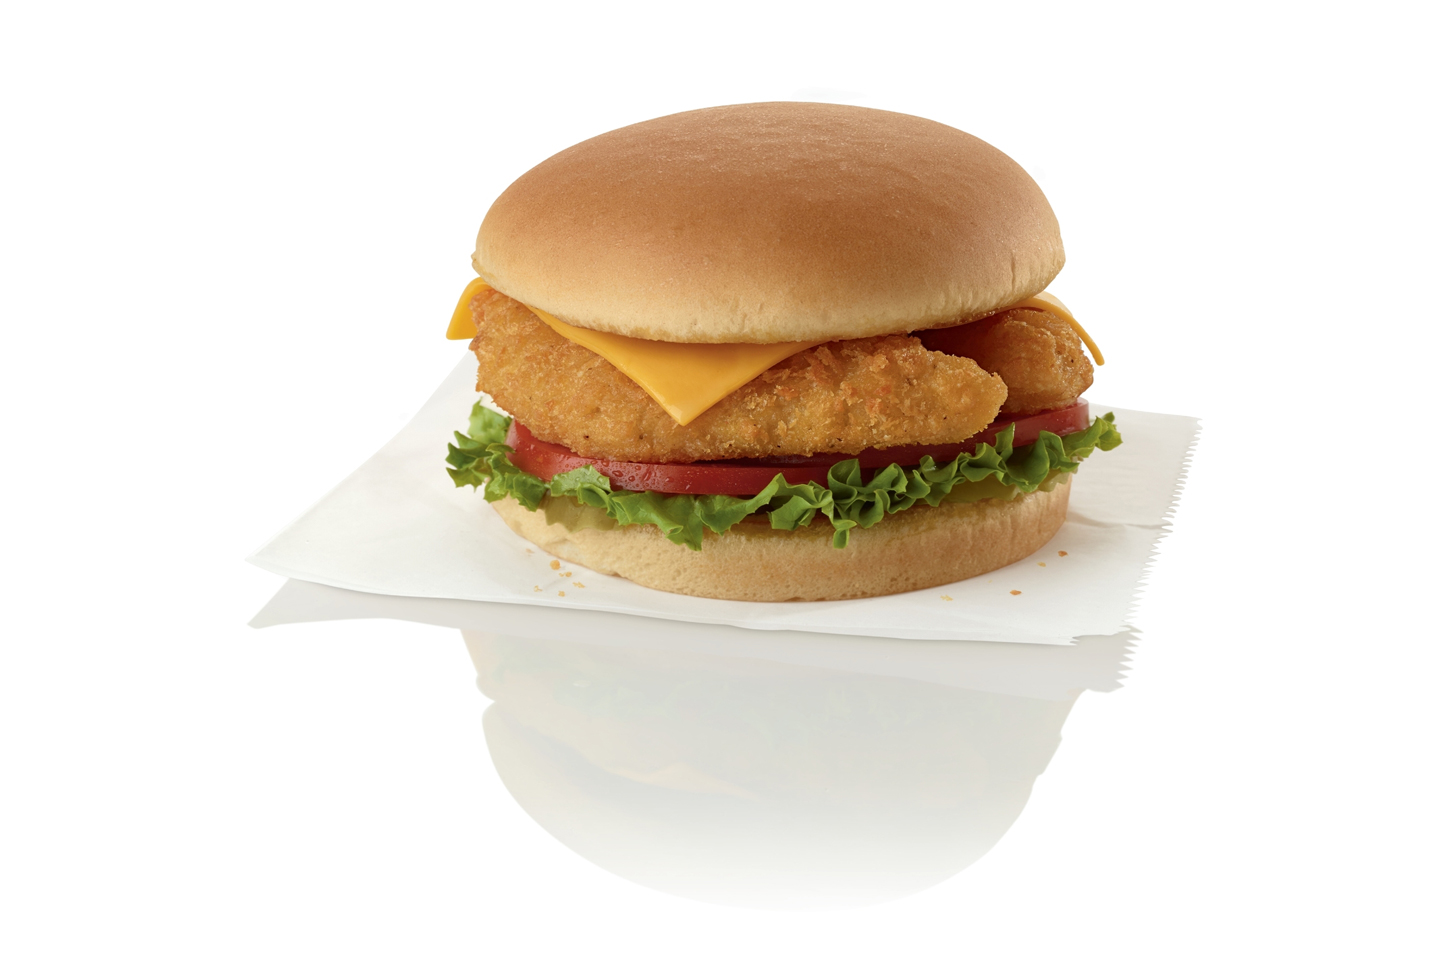 Chick-fil-A Just Brought Back Its Fish Sandwich for Lent